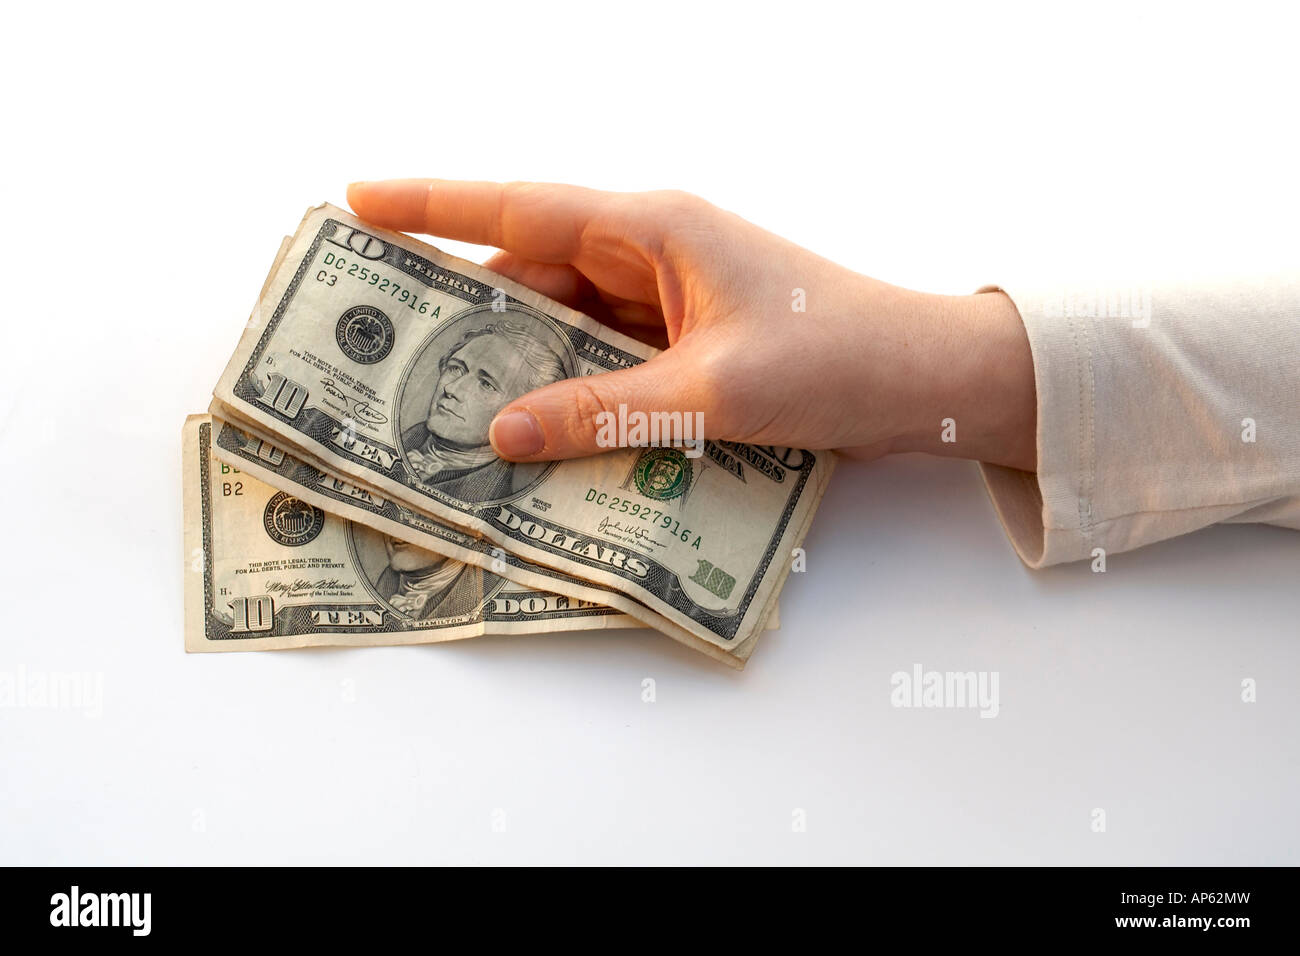 Hand Holding a Fan of ten dollars - Stock Image